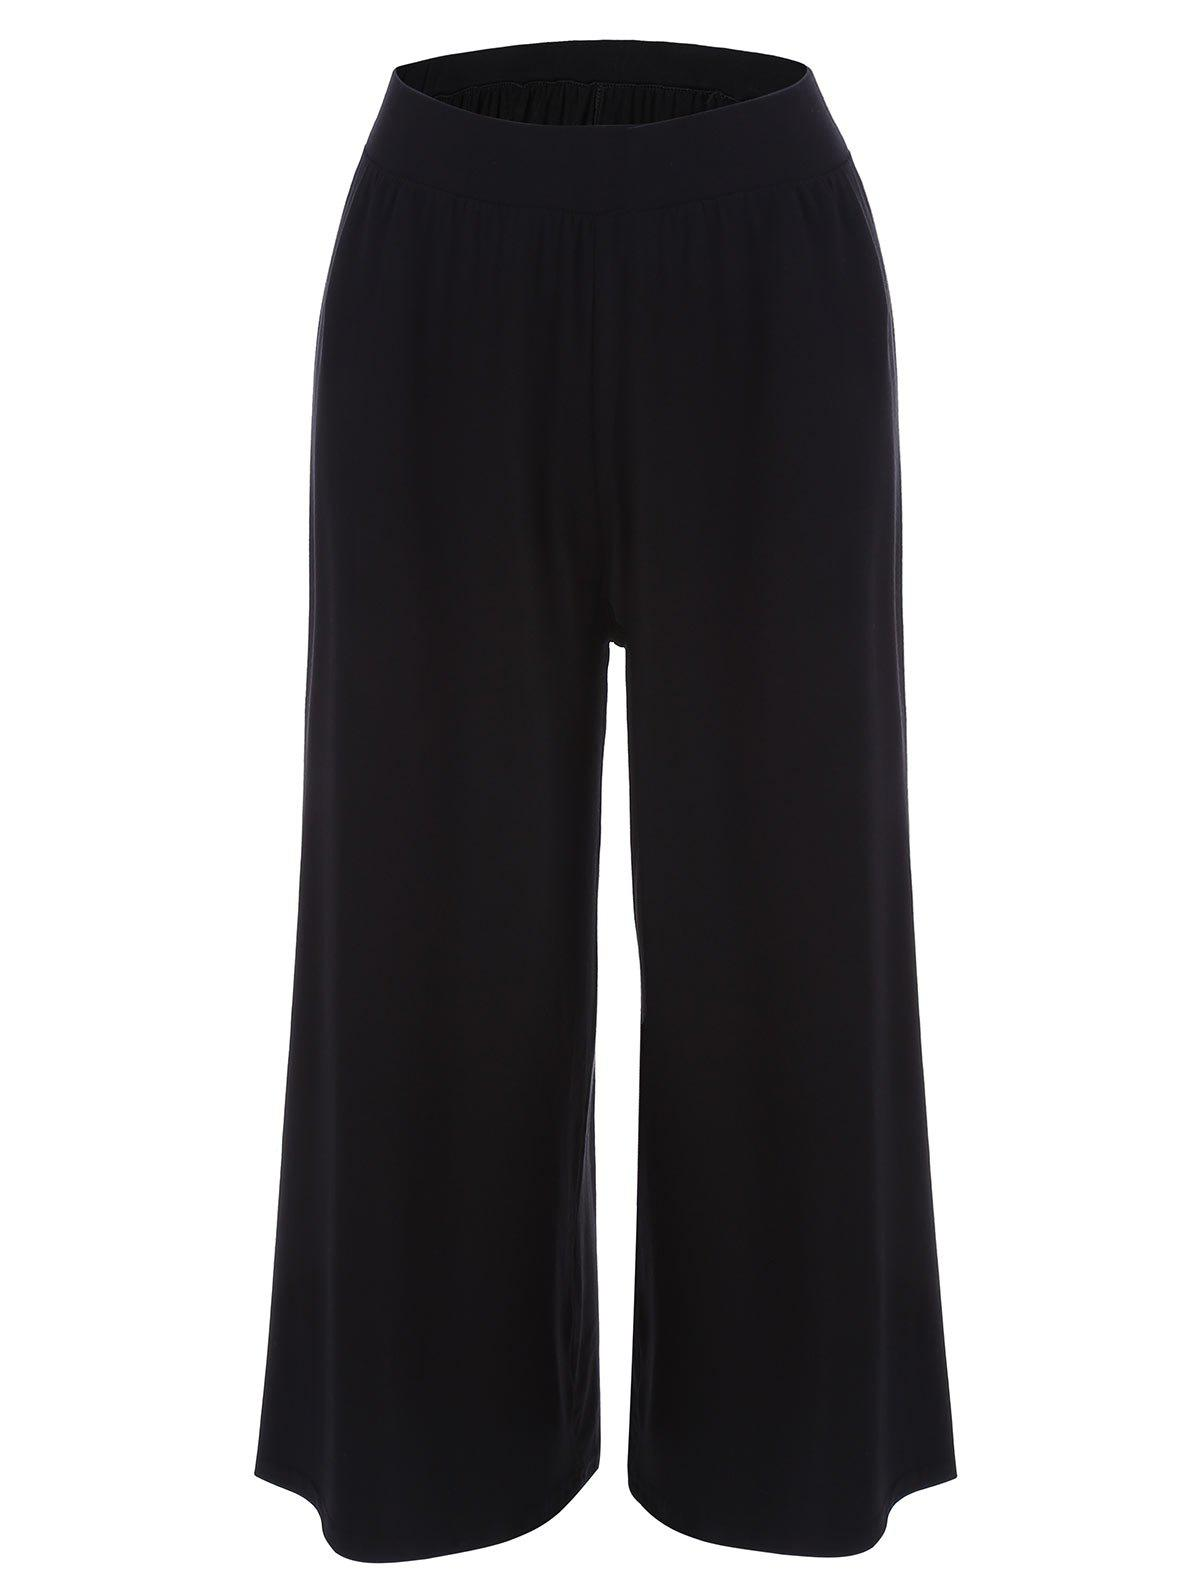 Casual Wide Leg Knit Pants - BLACK 2XL